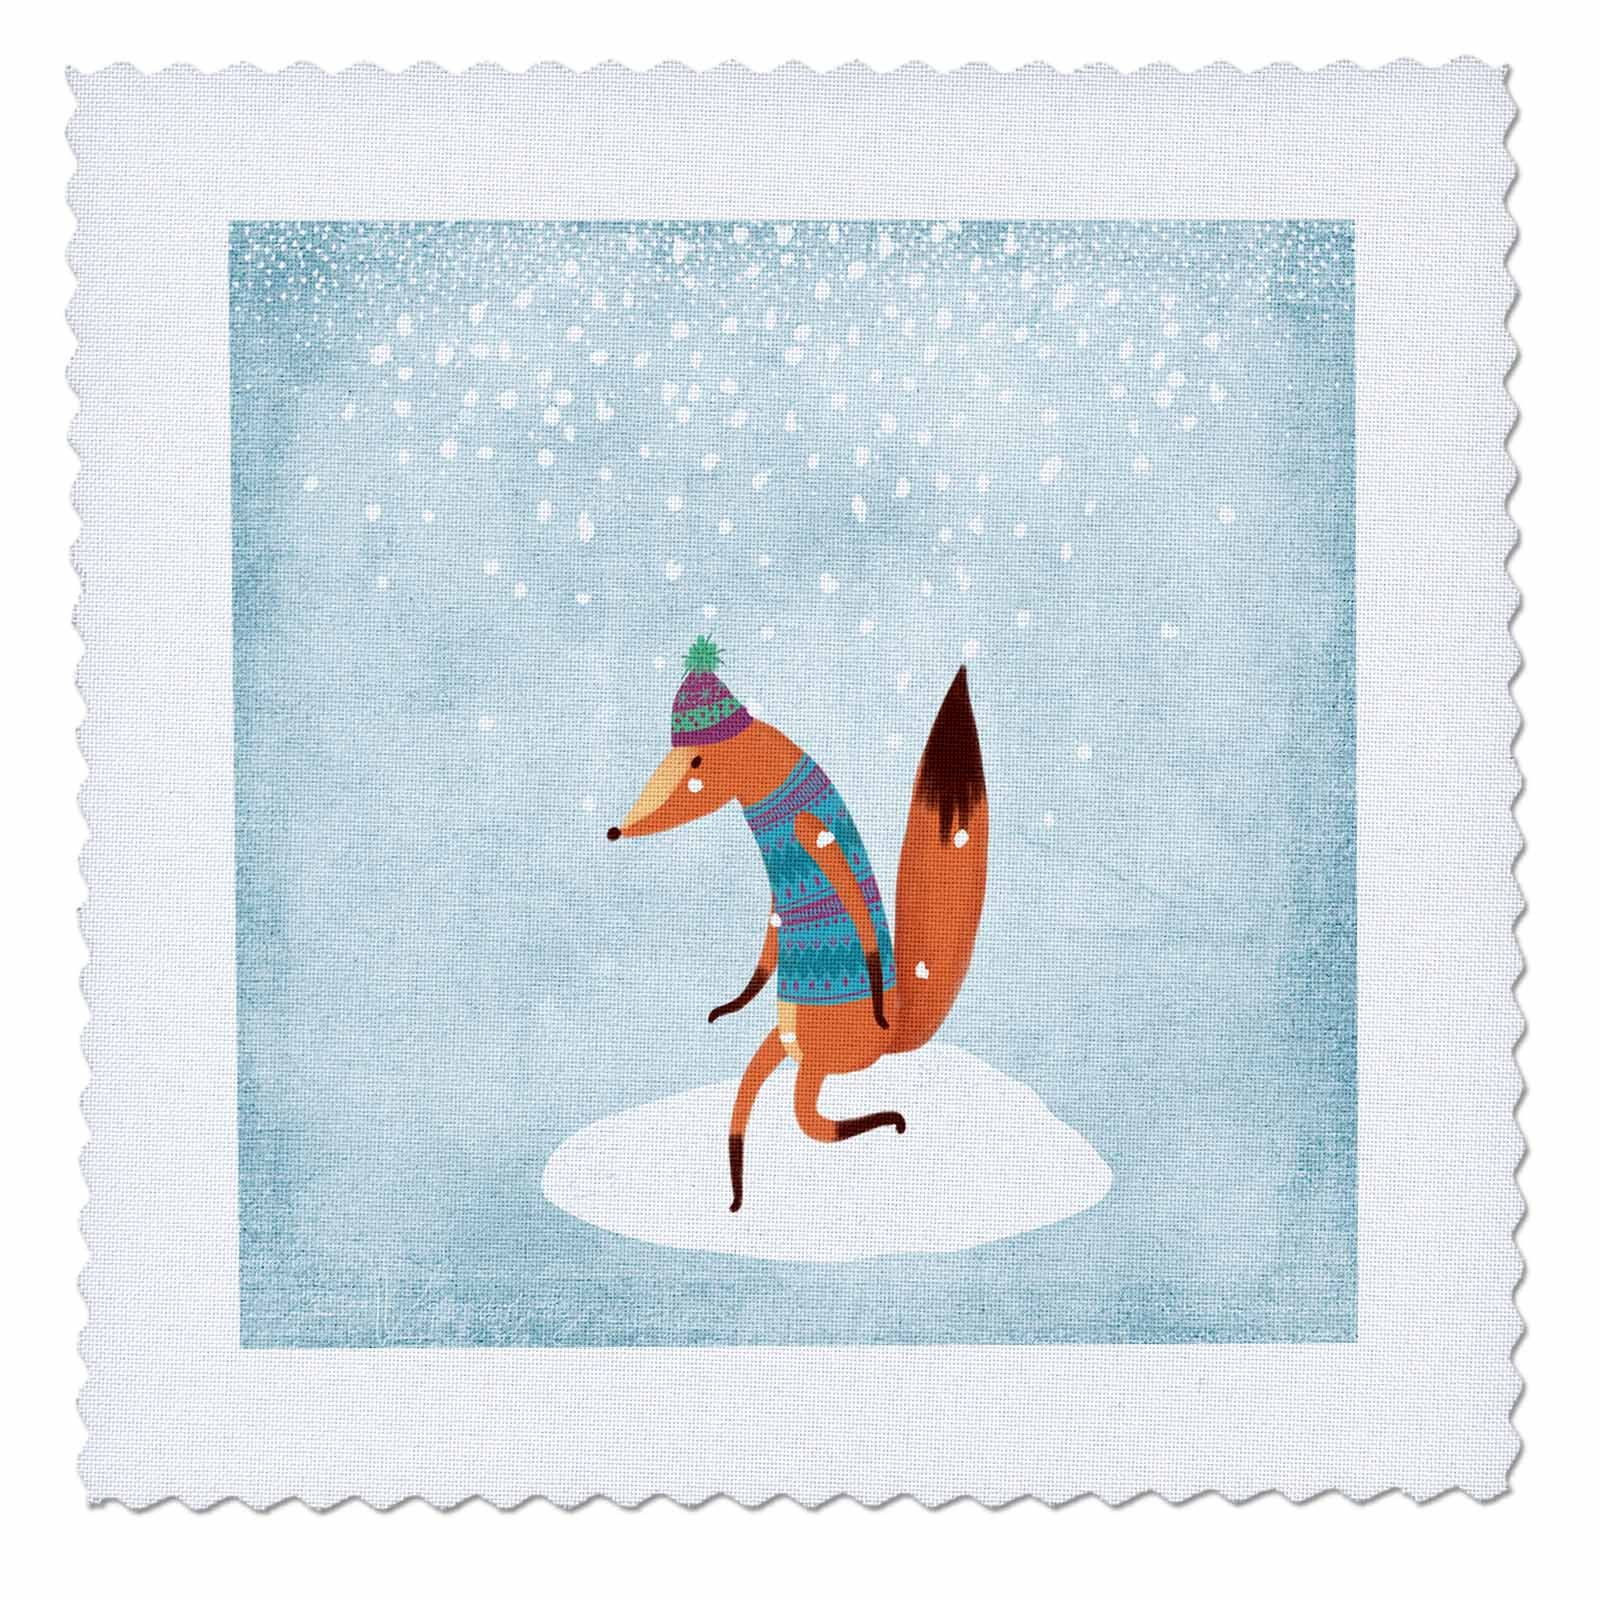 3dRose Uta Naumann Watercolor Illustration Animal - Cute Animal Illustration of a Fox in Winter Snow- For Children - 16x16 inch quilt square (qs_269052_6)